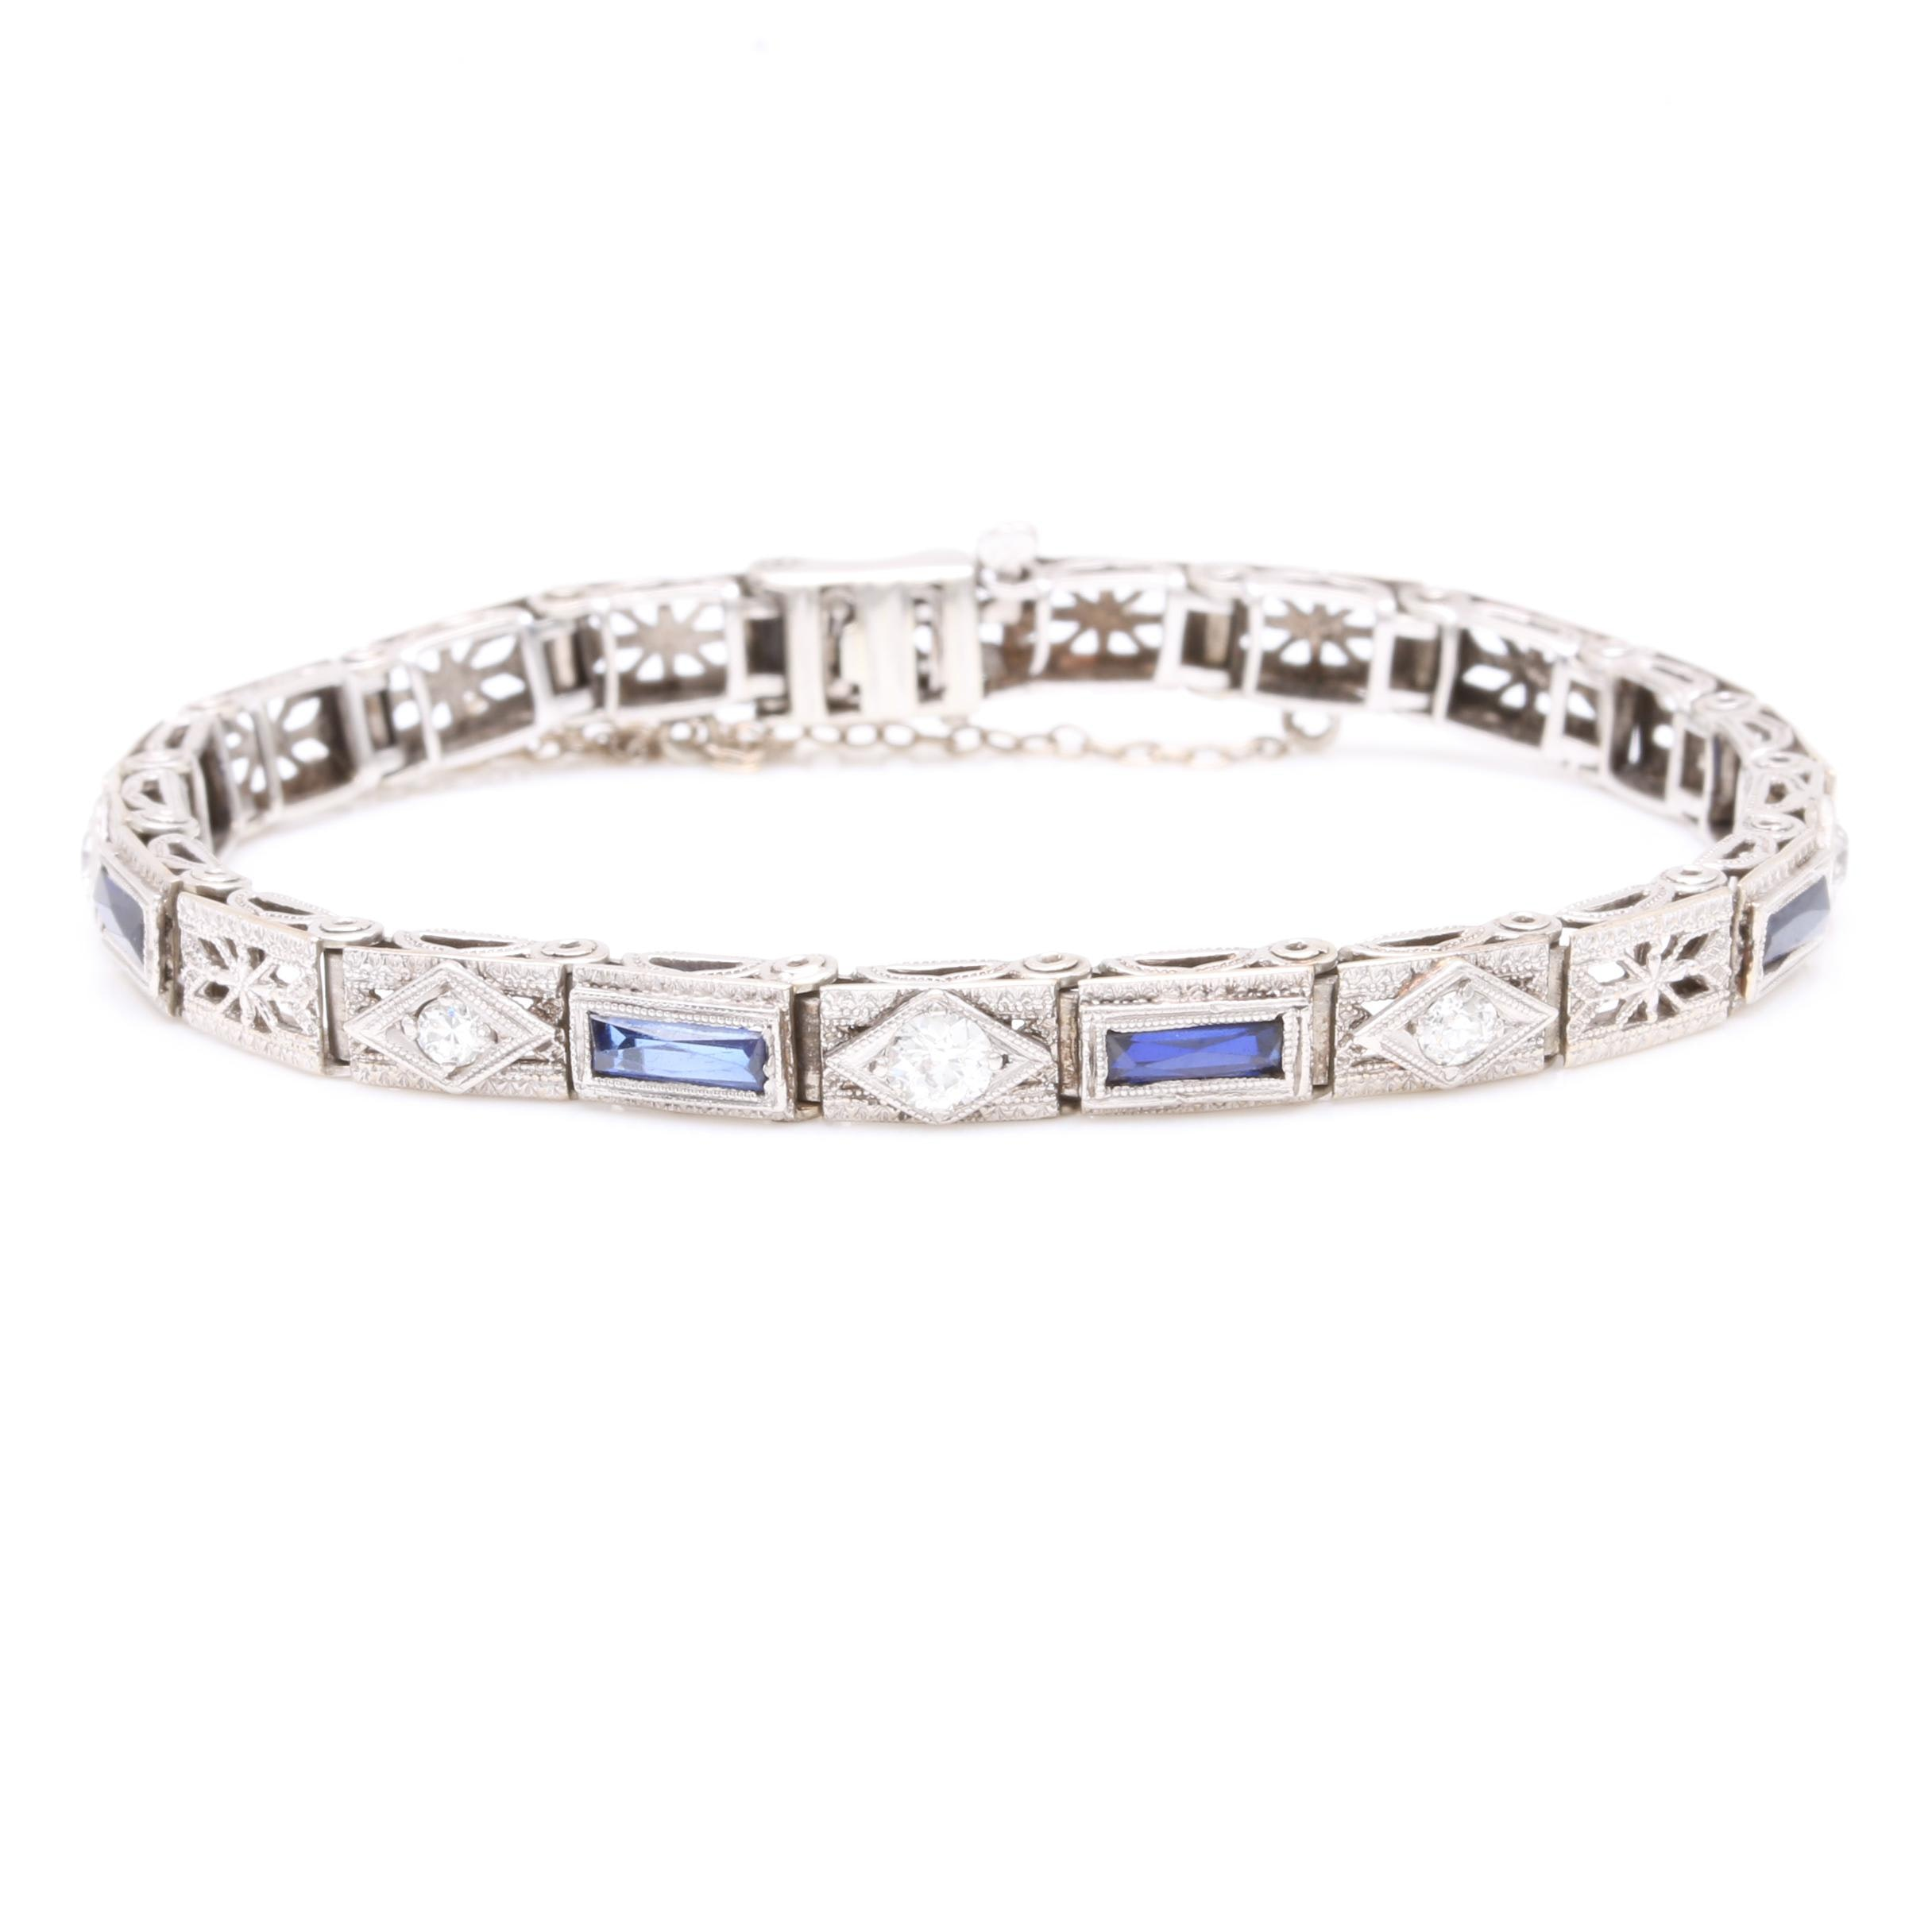 Vintage Platinum and 14K White Gold Synthetic Sapphire and Diamond Bracelet